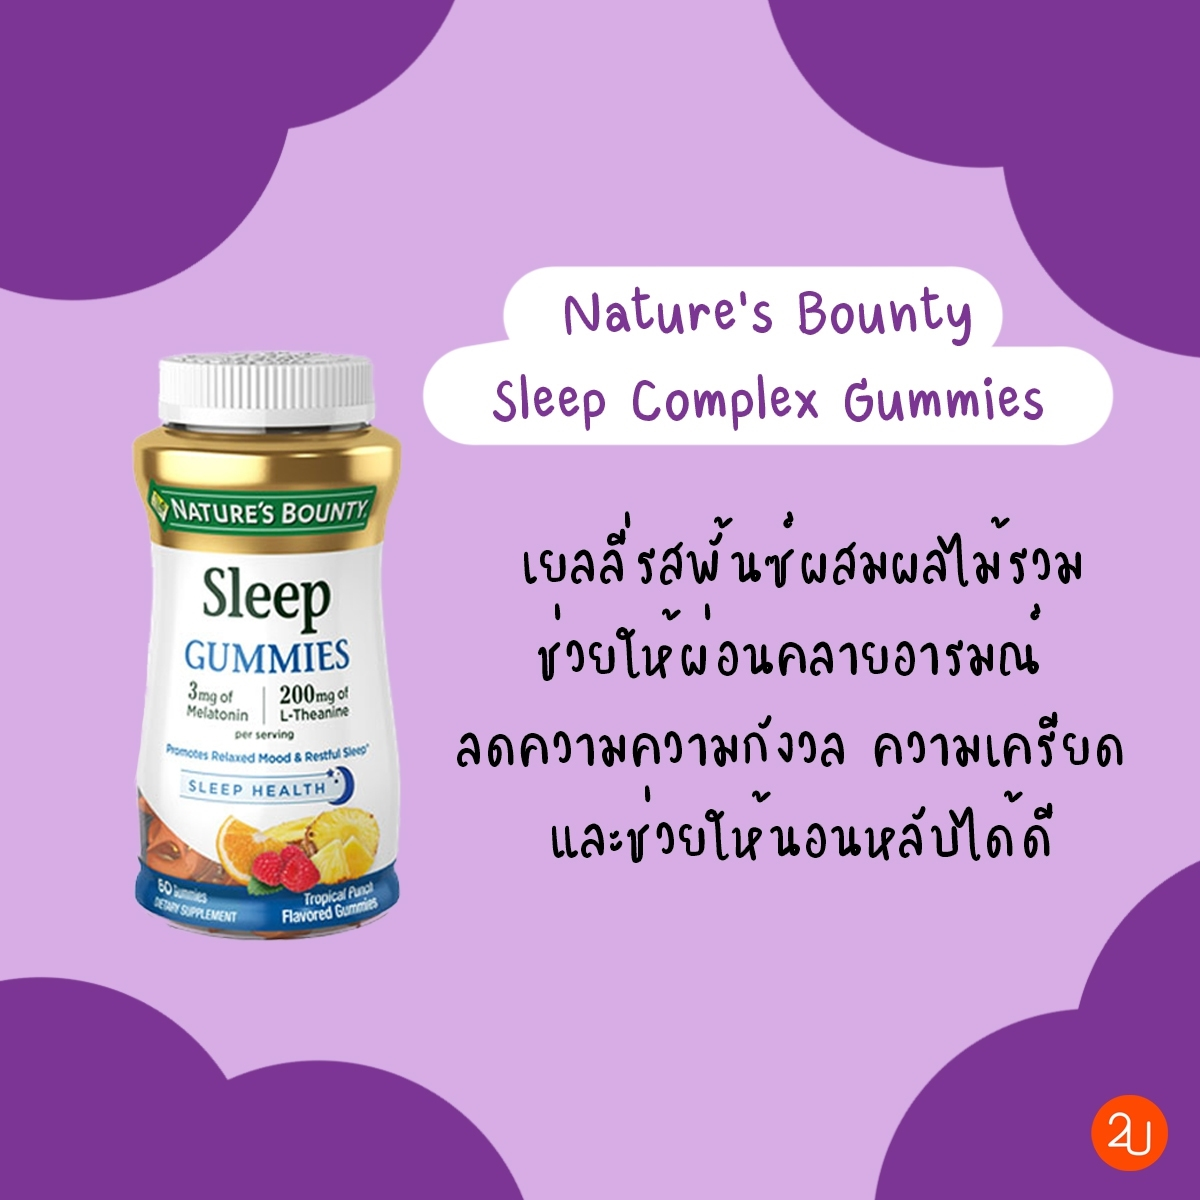 Nature's Bounty Sleep Complex Gummies